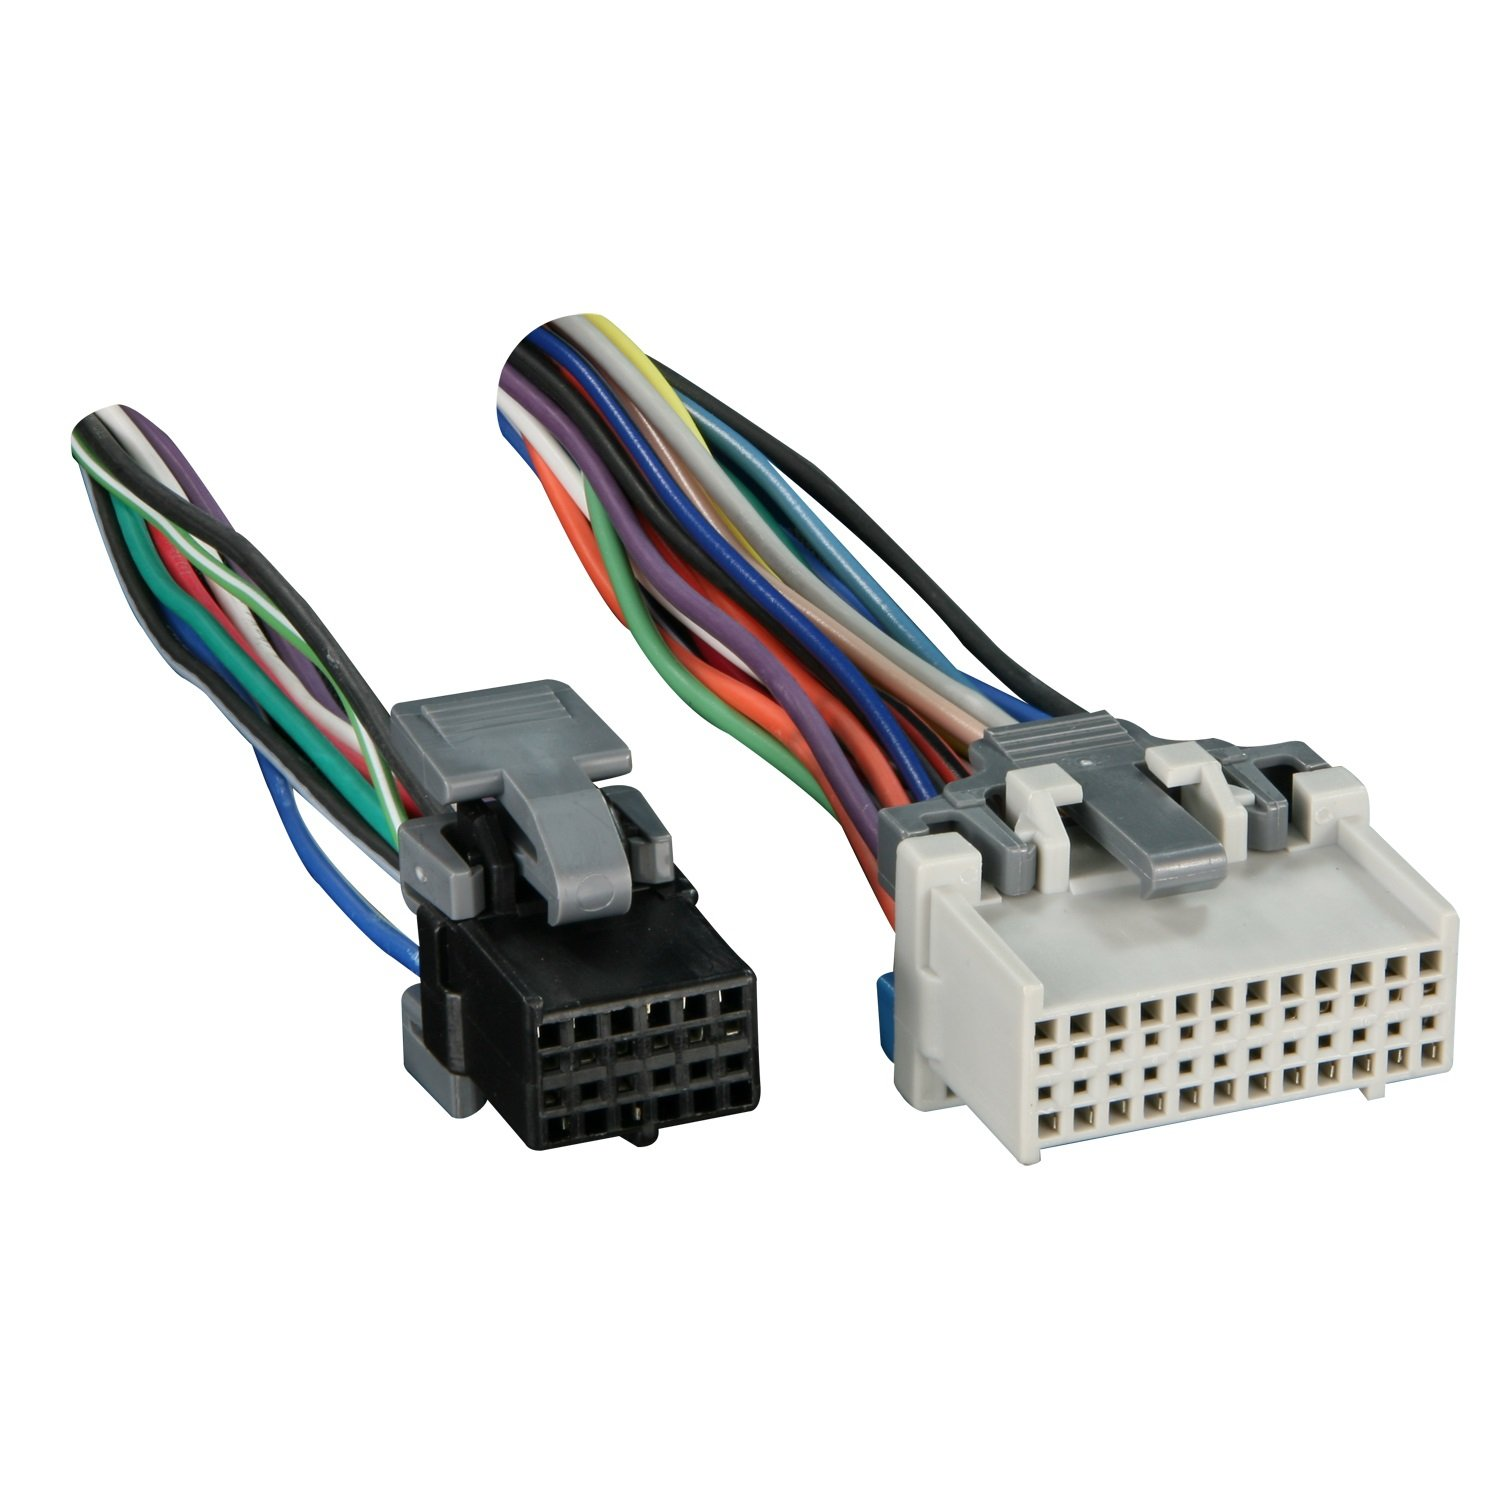 711log4bdML._SL1500_ amazon com metra turbowires 71 2003 1 wiring harness car electronics  at nearapp.co